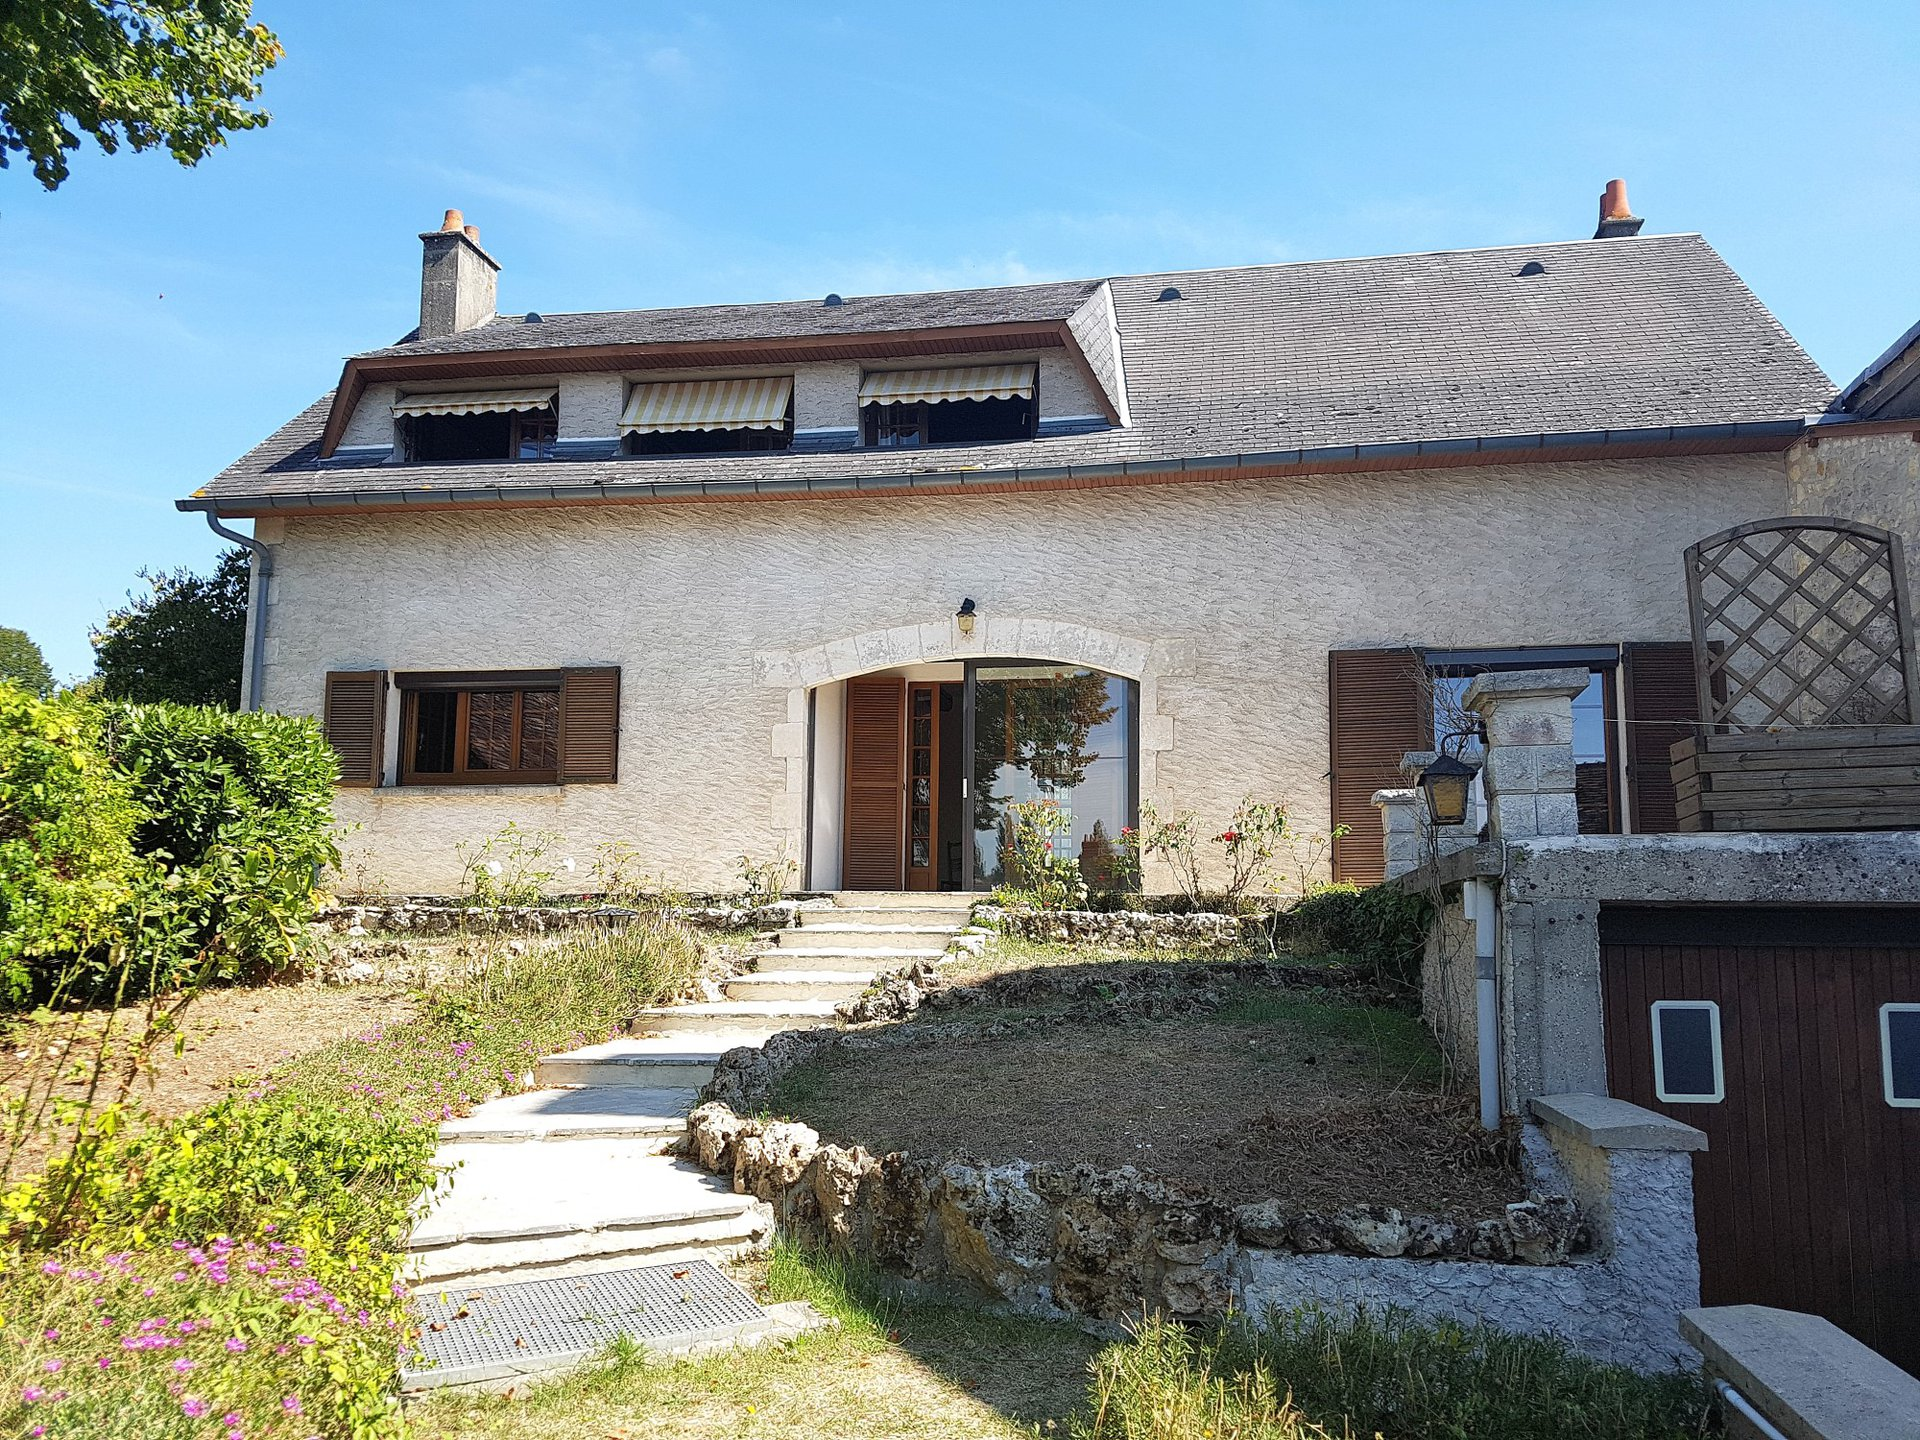 La Brenne, Indre 36: village house with garage